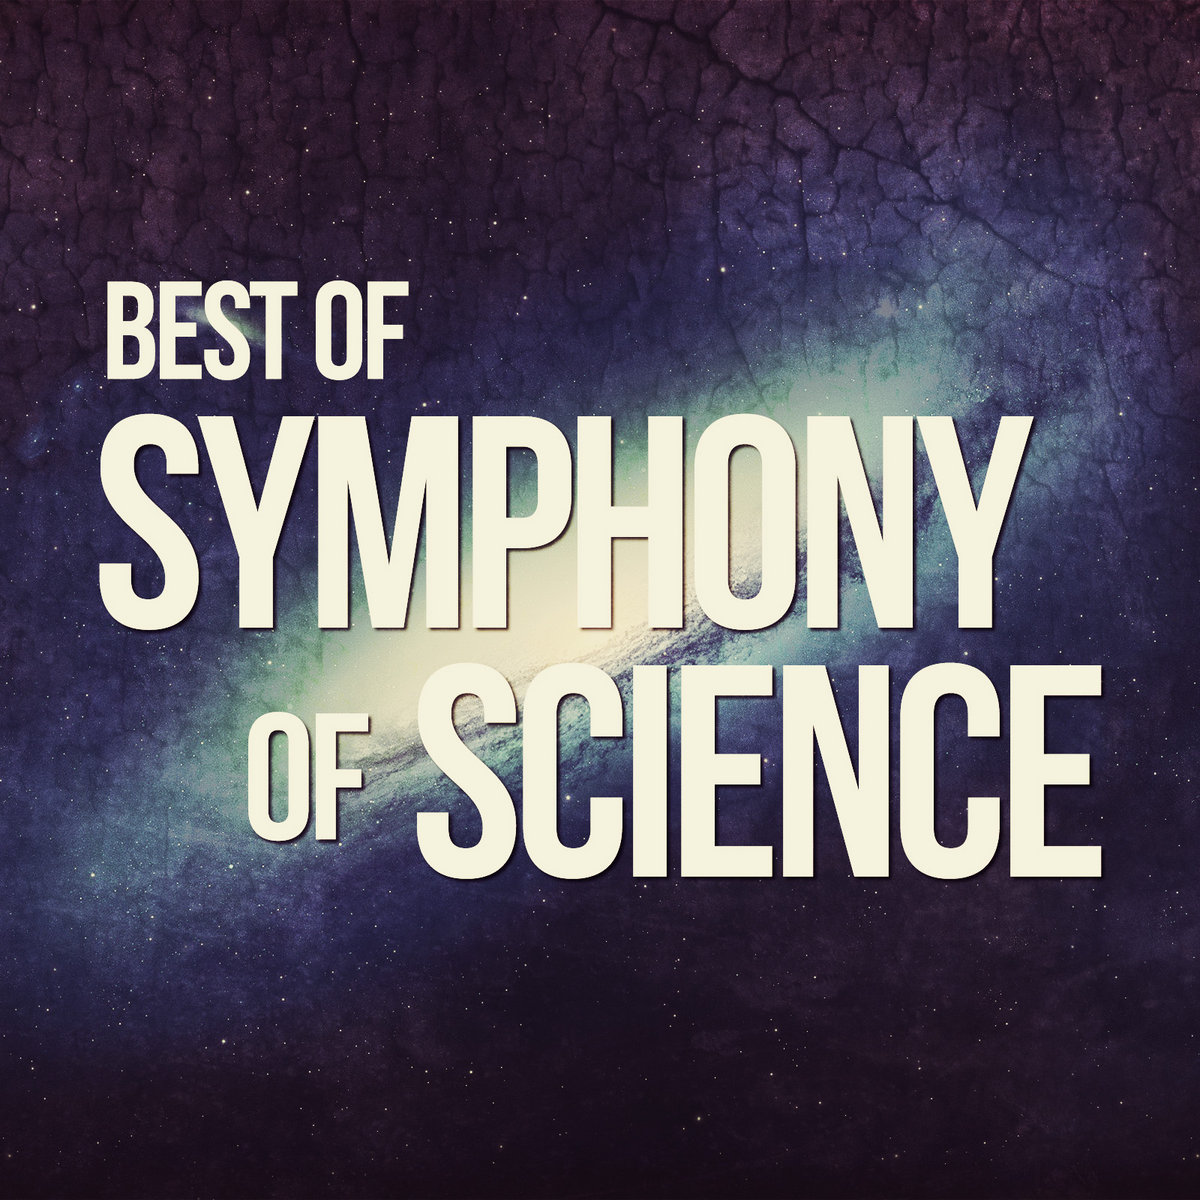 from best of symphony of science by melodysheep